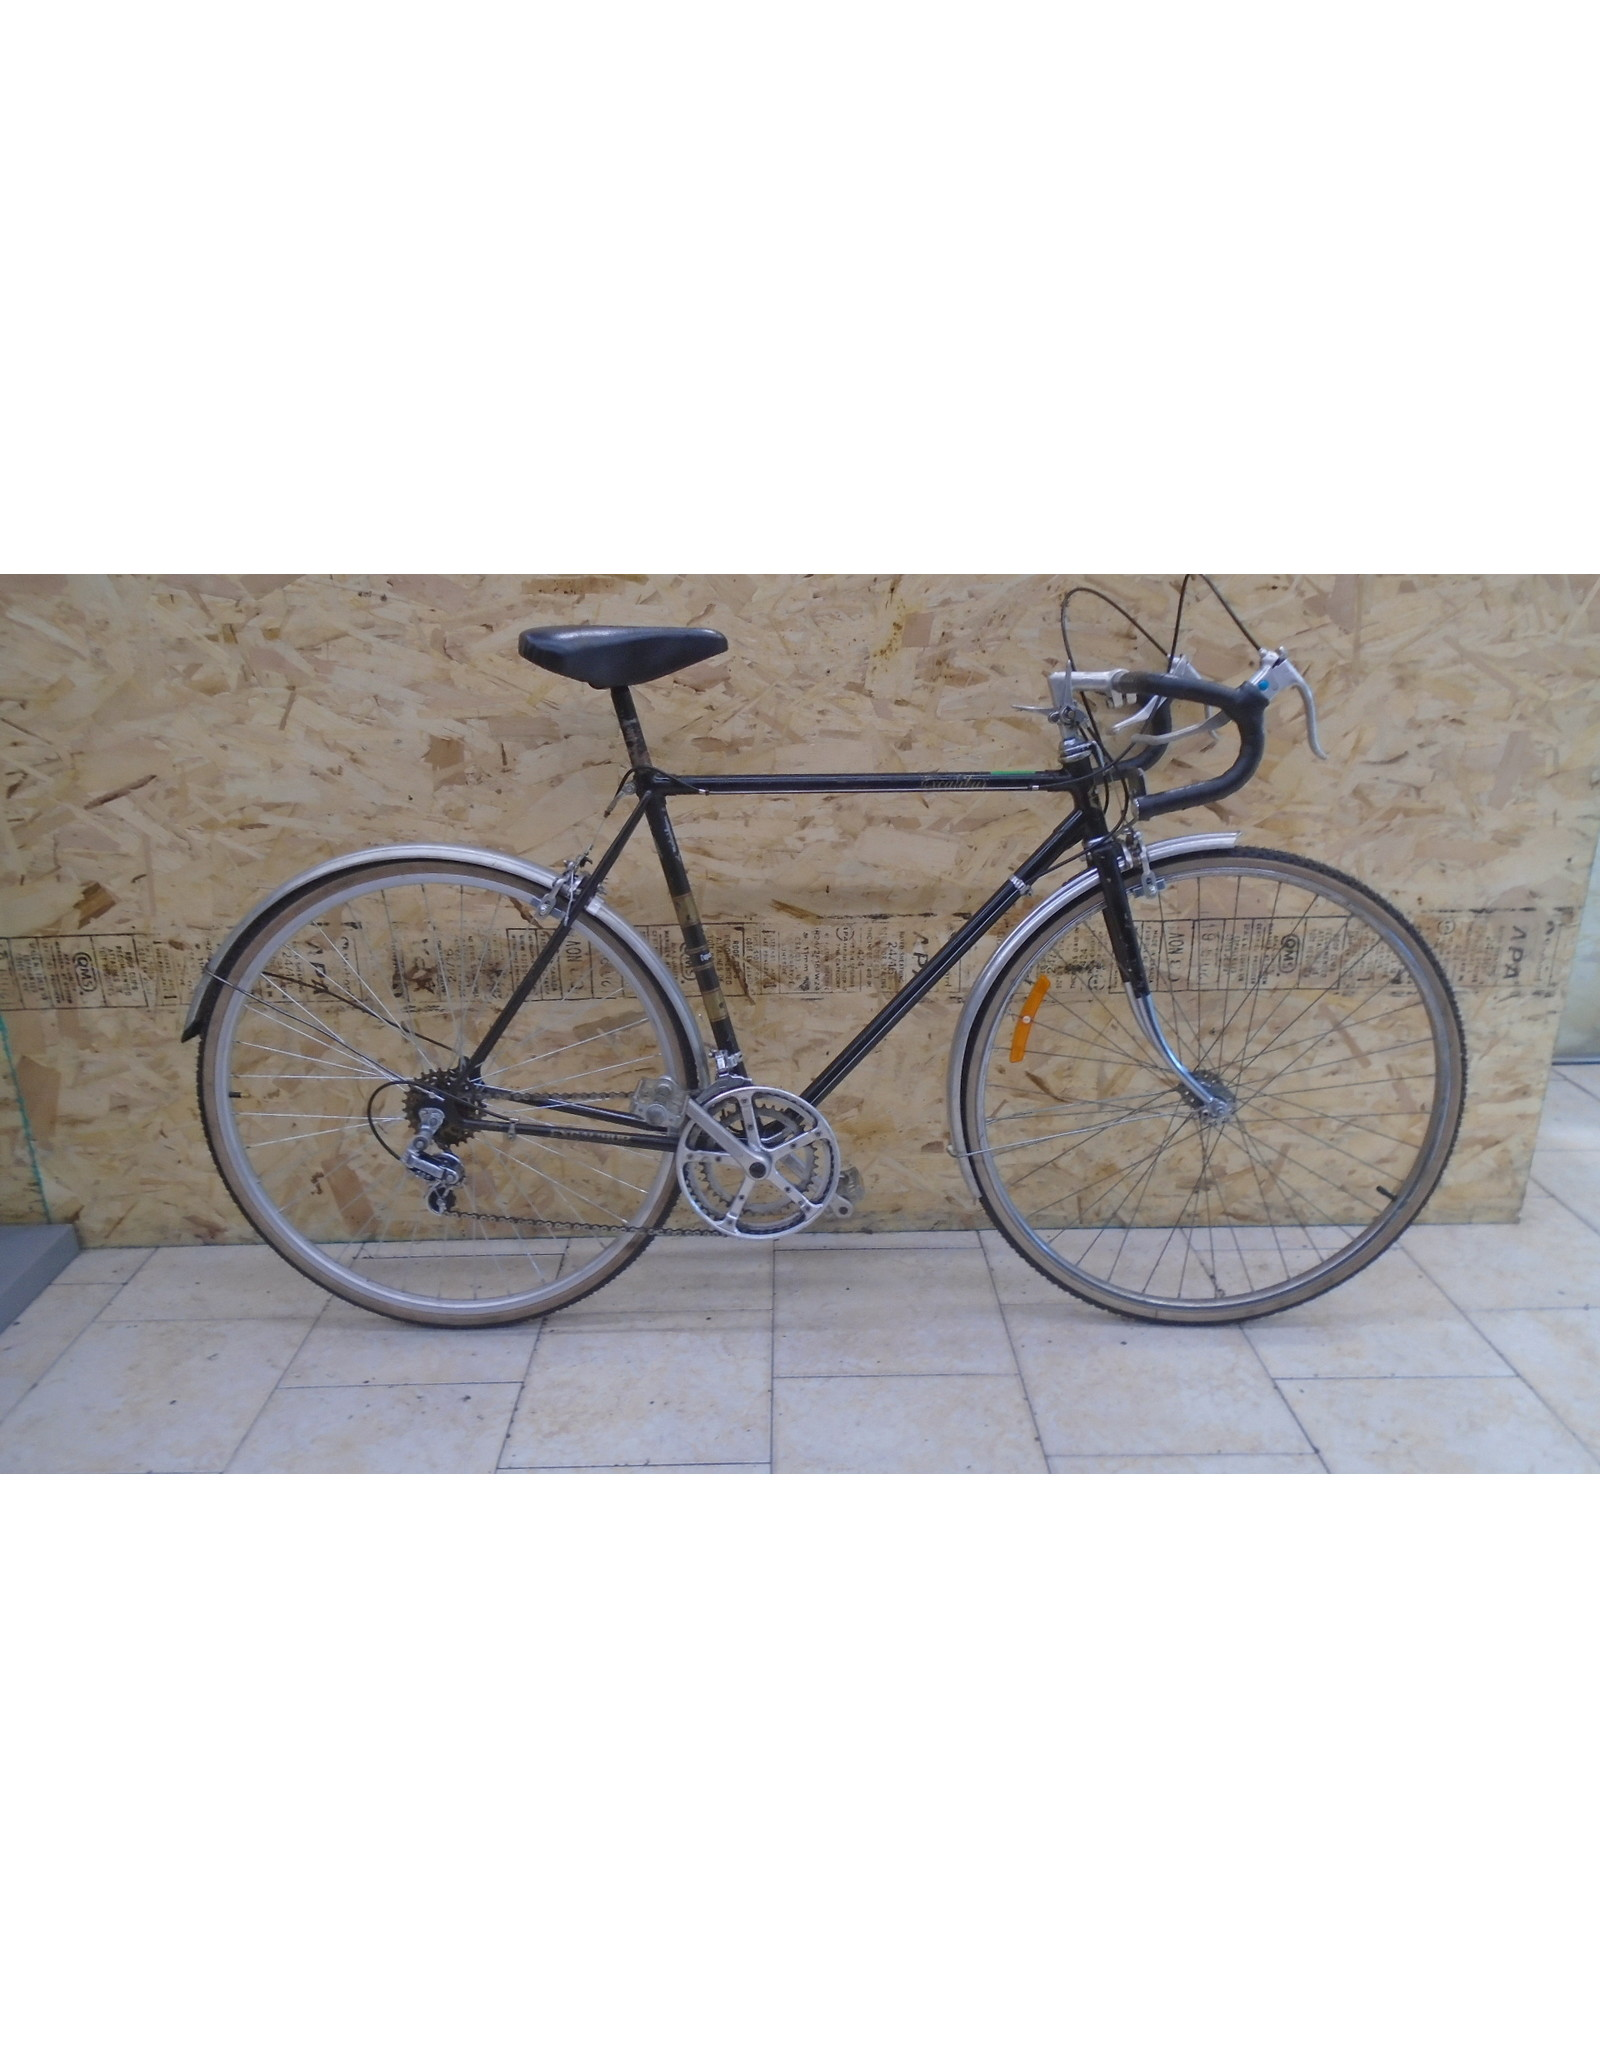 Vélo usagé de route Supercycle 22'' - 10024